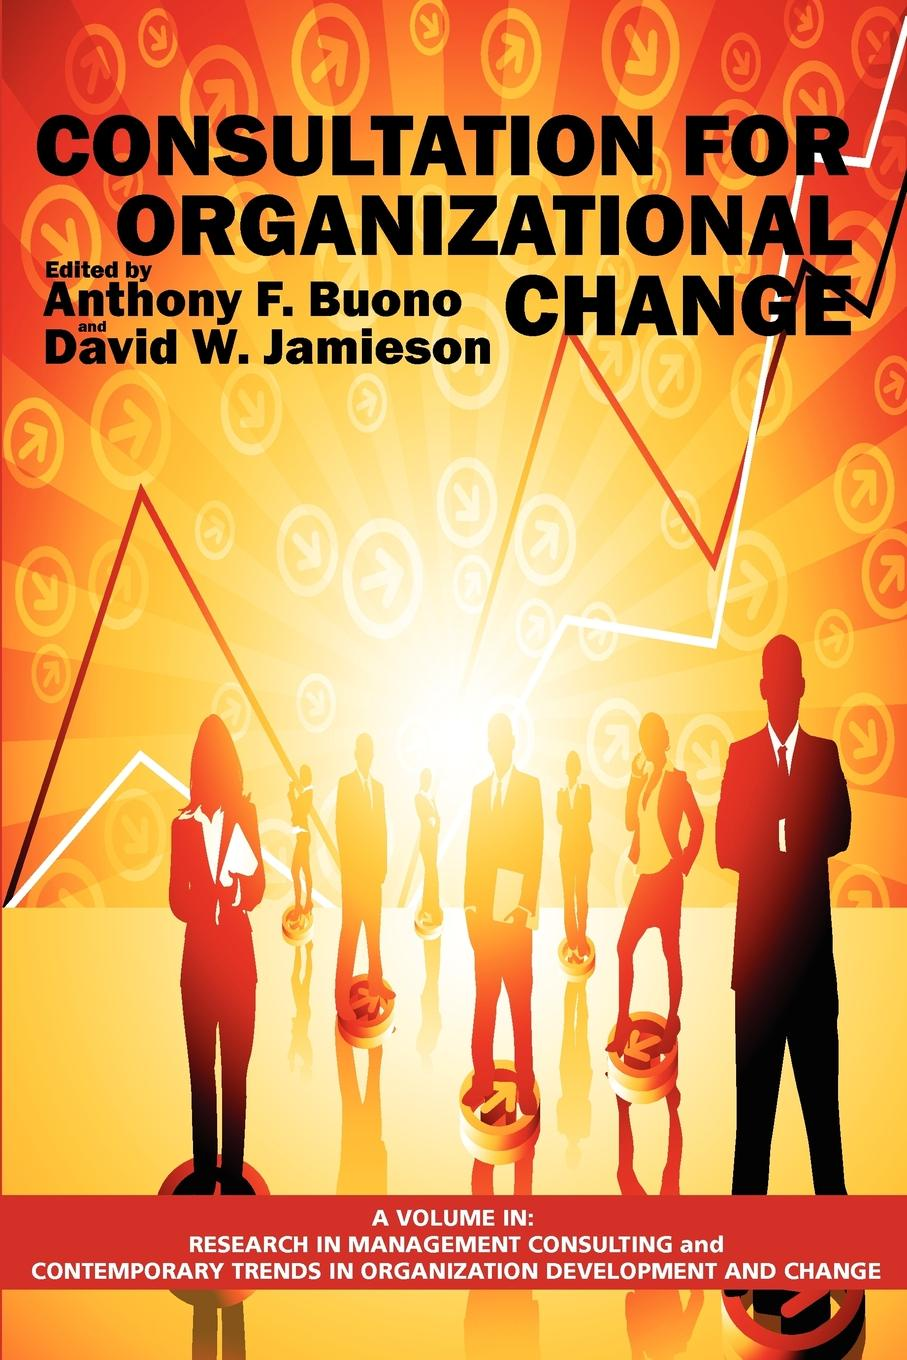 Consultation for Organizational Change (PB) alan weiss organizational consulting how to be an effective internal change agent